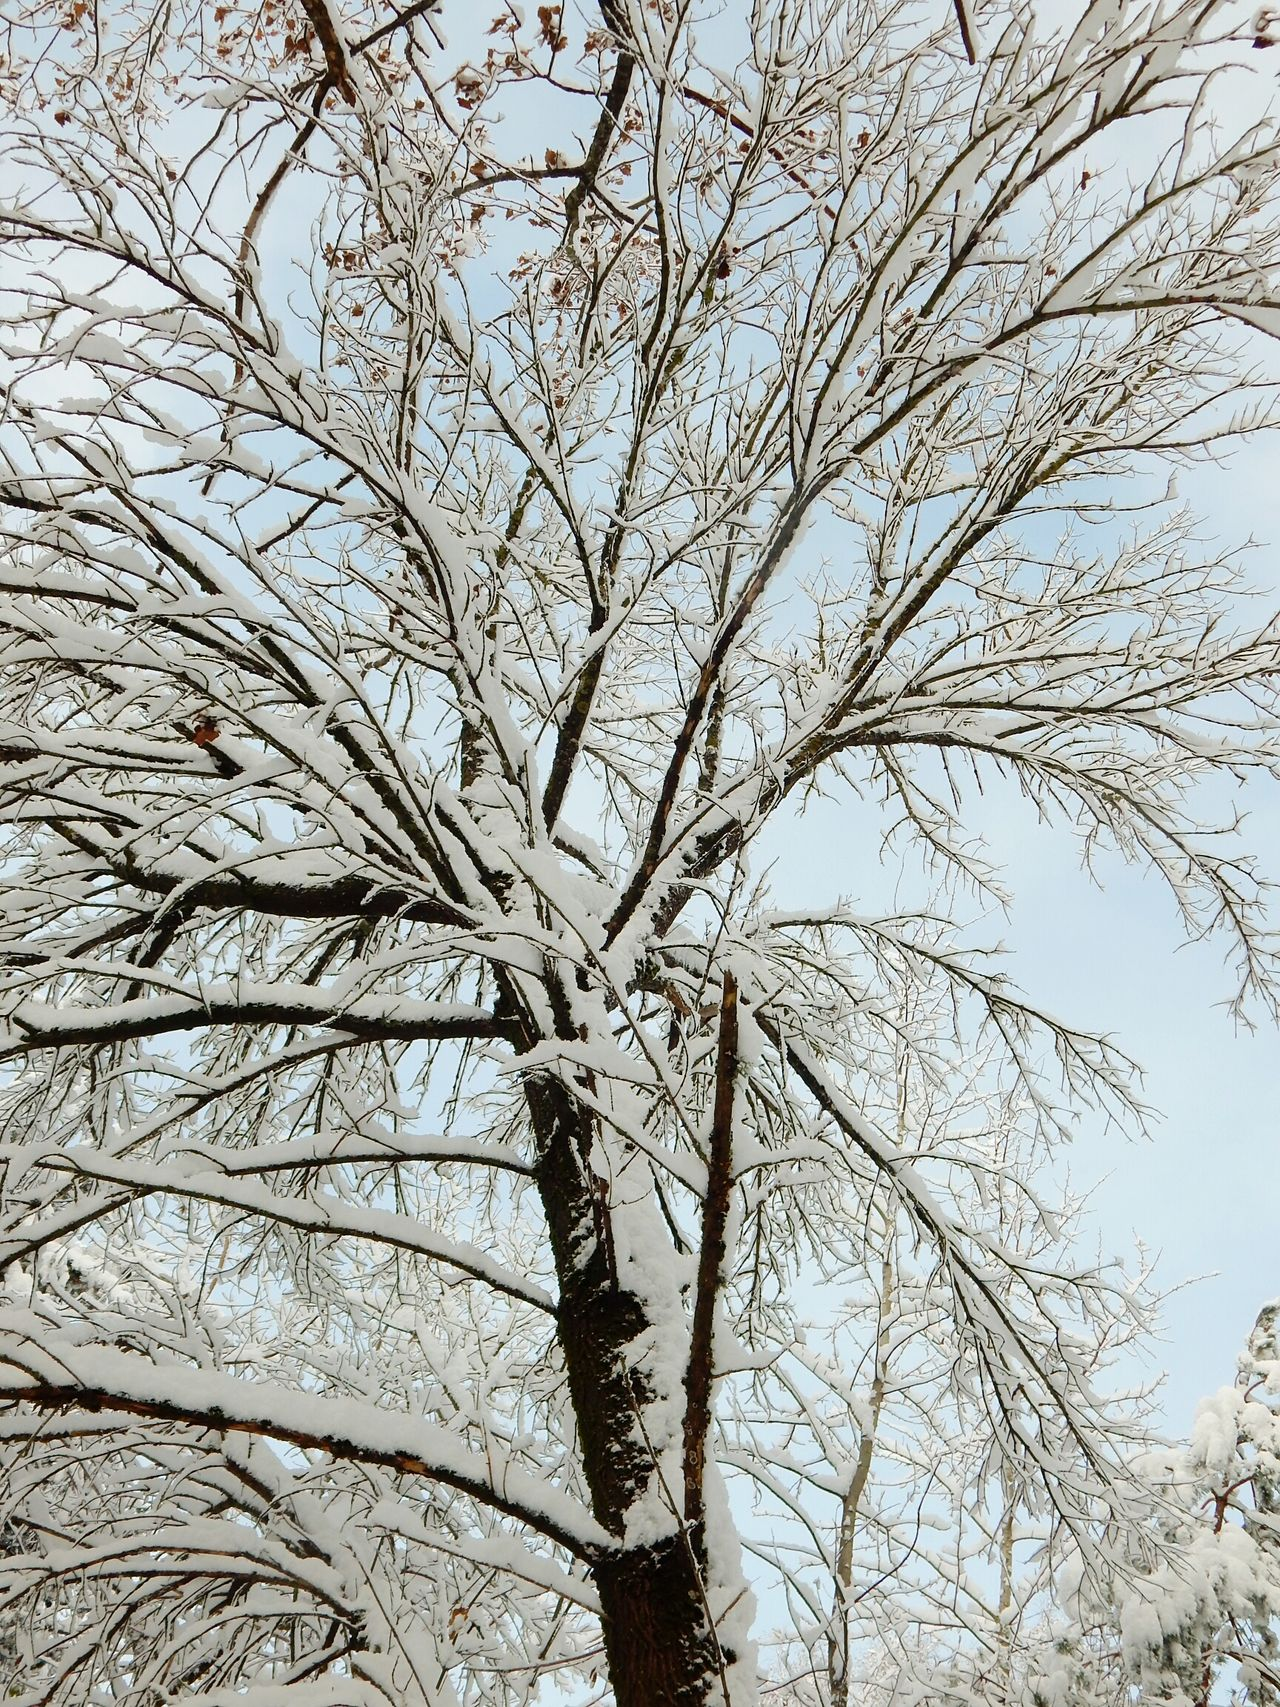 Tree Nature Branch Sky Low Angle View Outdoors No People Growth Tranquility Beauty In Nature Bare Tree Day Close-up Backgrounds Non-urban Scene Snow Riga Latvia Forest Beauty In Nature GrowthWinter Nature Tree